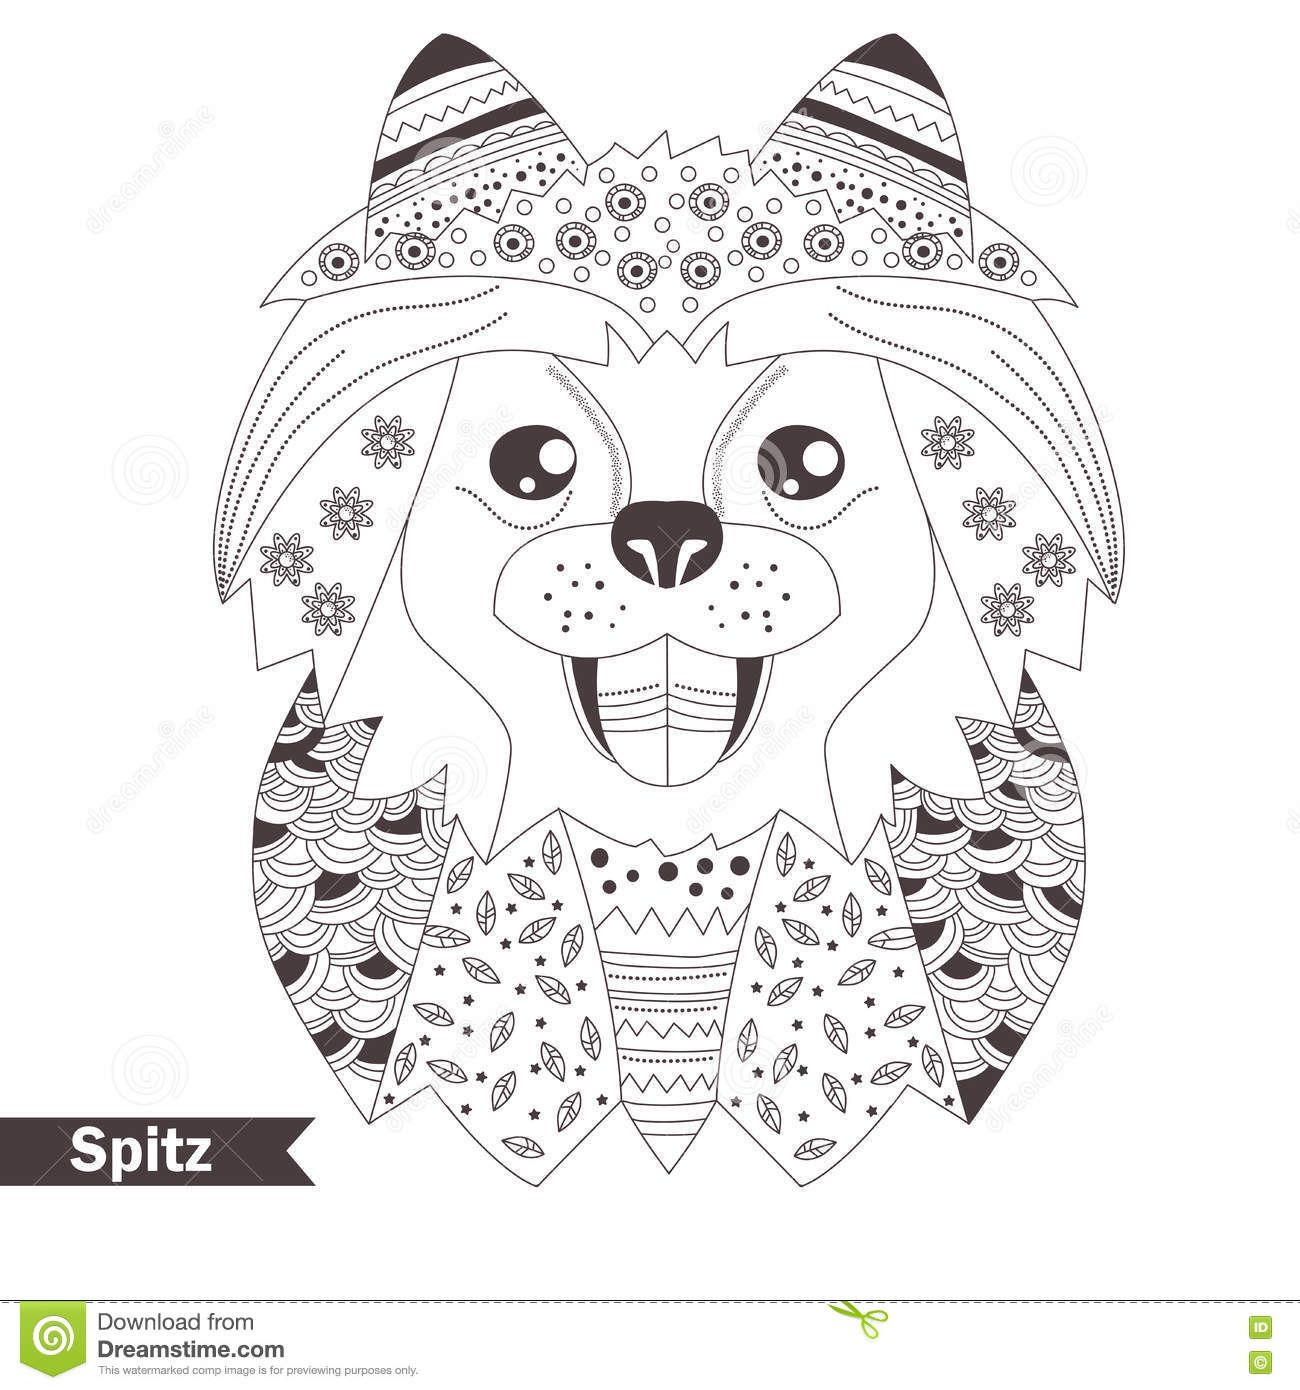 Pomeranian Coloring Pages for Adults | Pomeranian Coloring Book ...